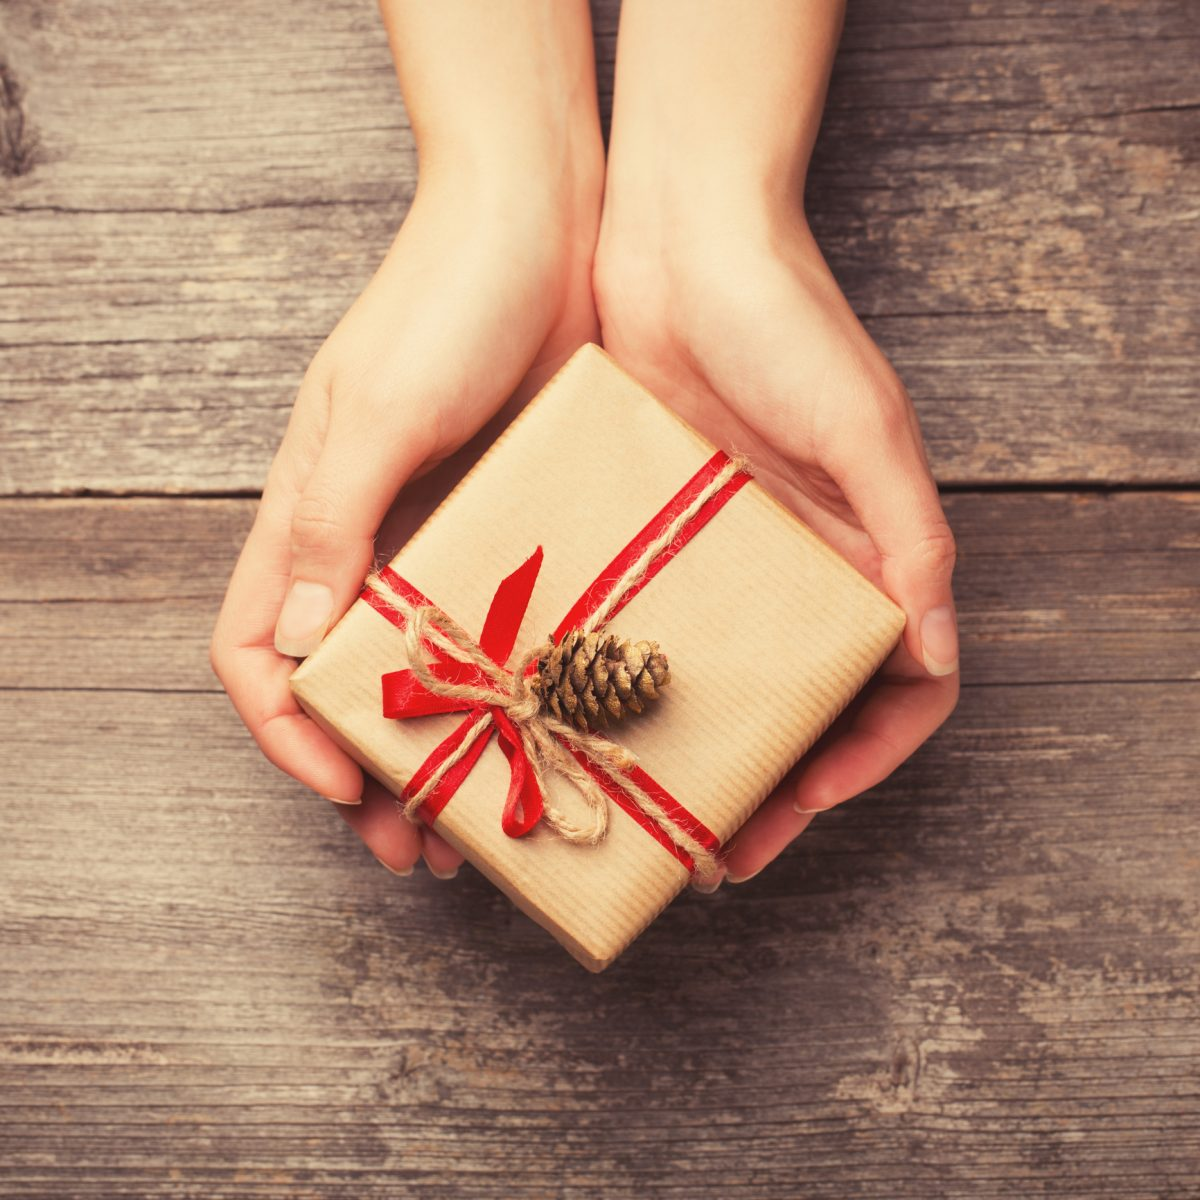 Hands holding small wrapped gift